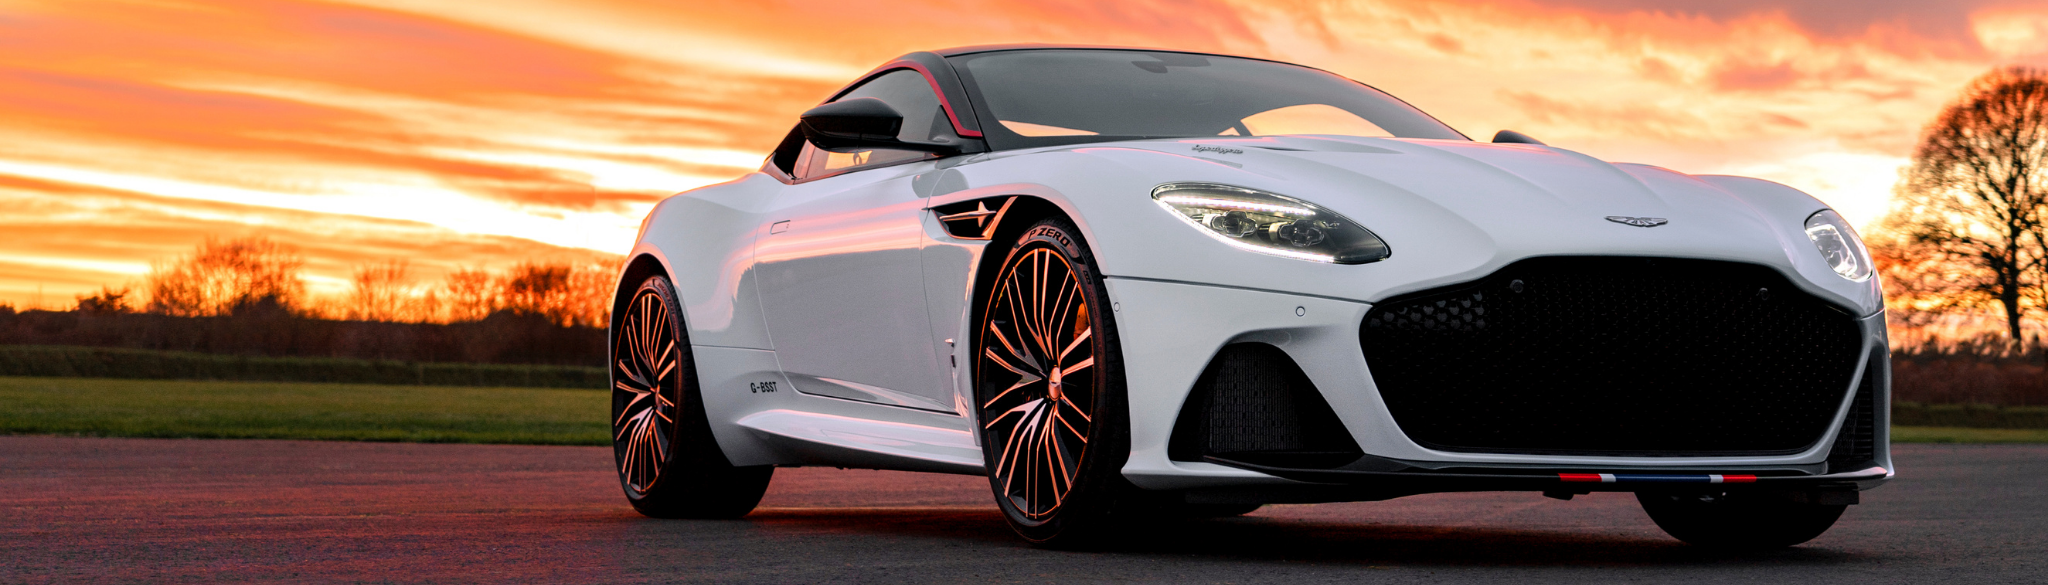 Aston Martin DBS Concorde Edition Revealed